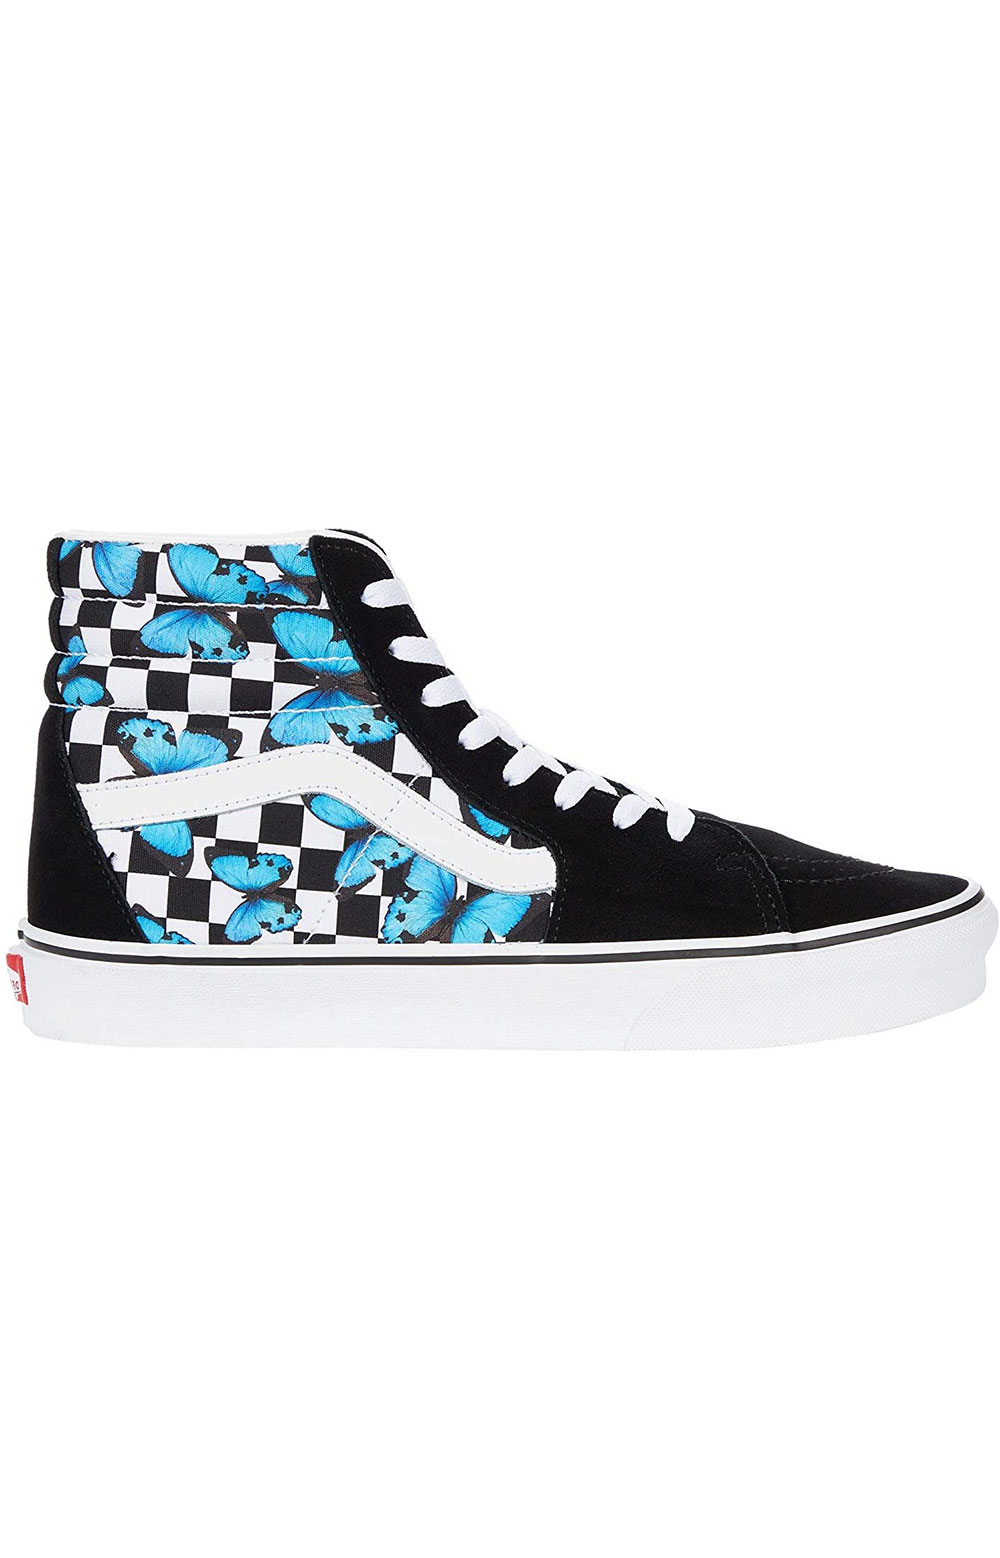 (HXV5KK) Butterfly Checkerboard Sk8-Hi Shoes